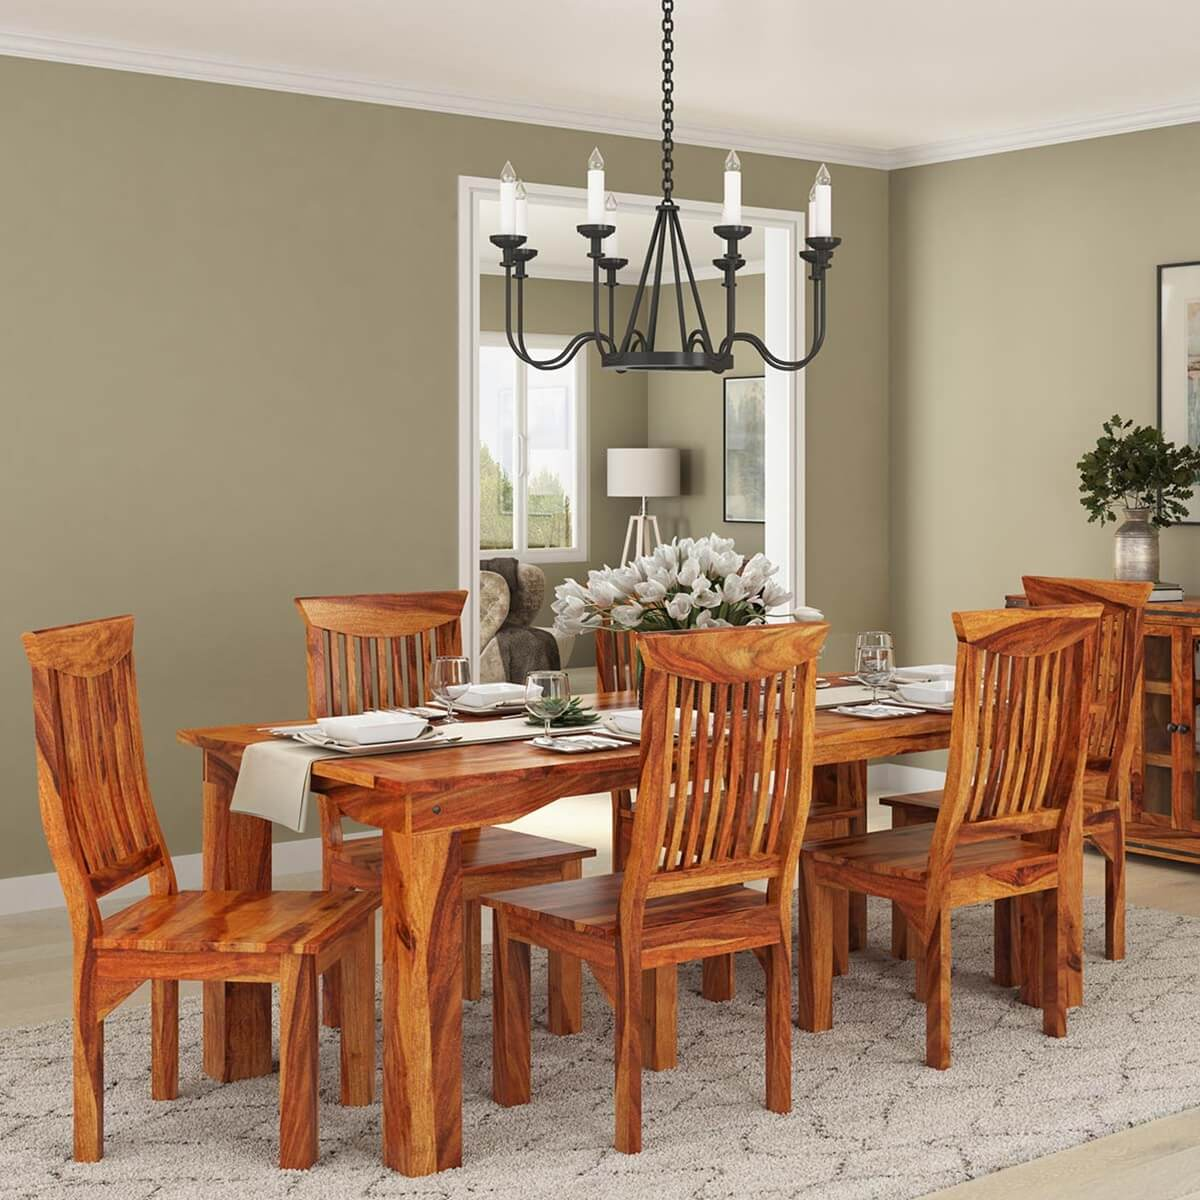 rustic dining table and chairs lazy boy chair parts idaho modern solid wood set